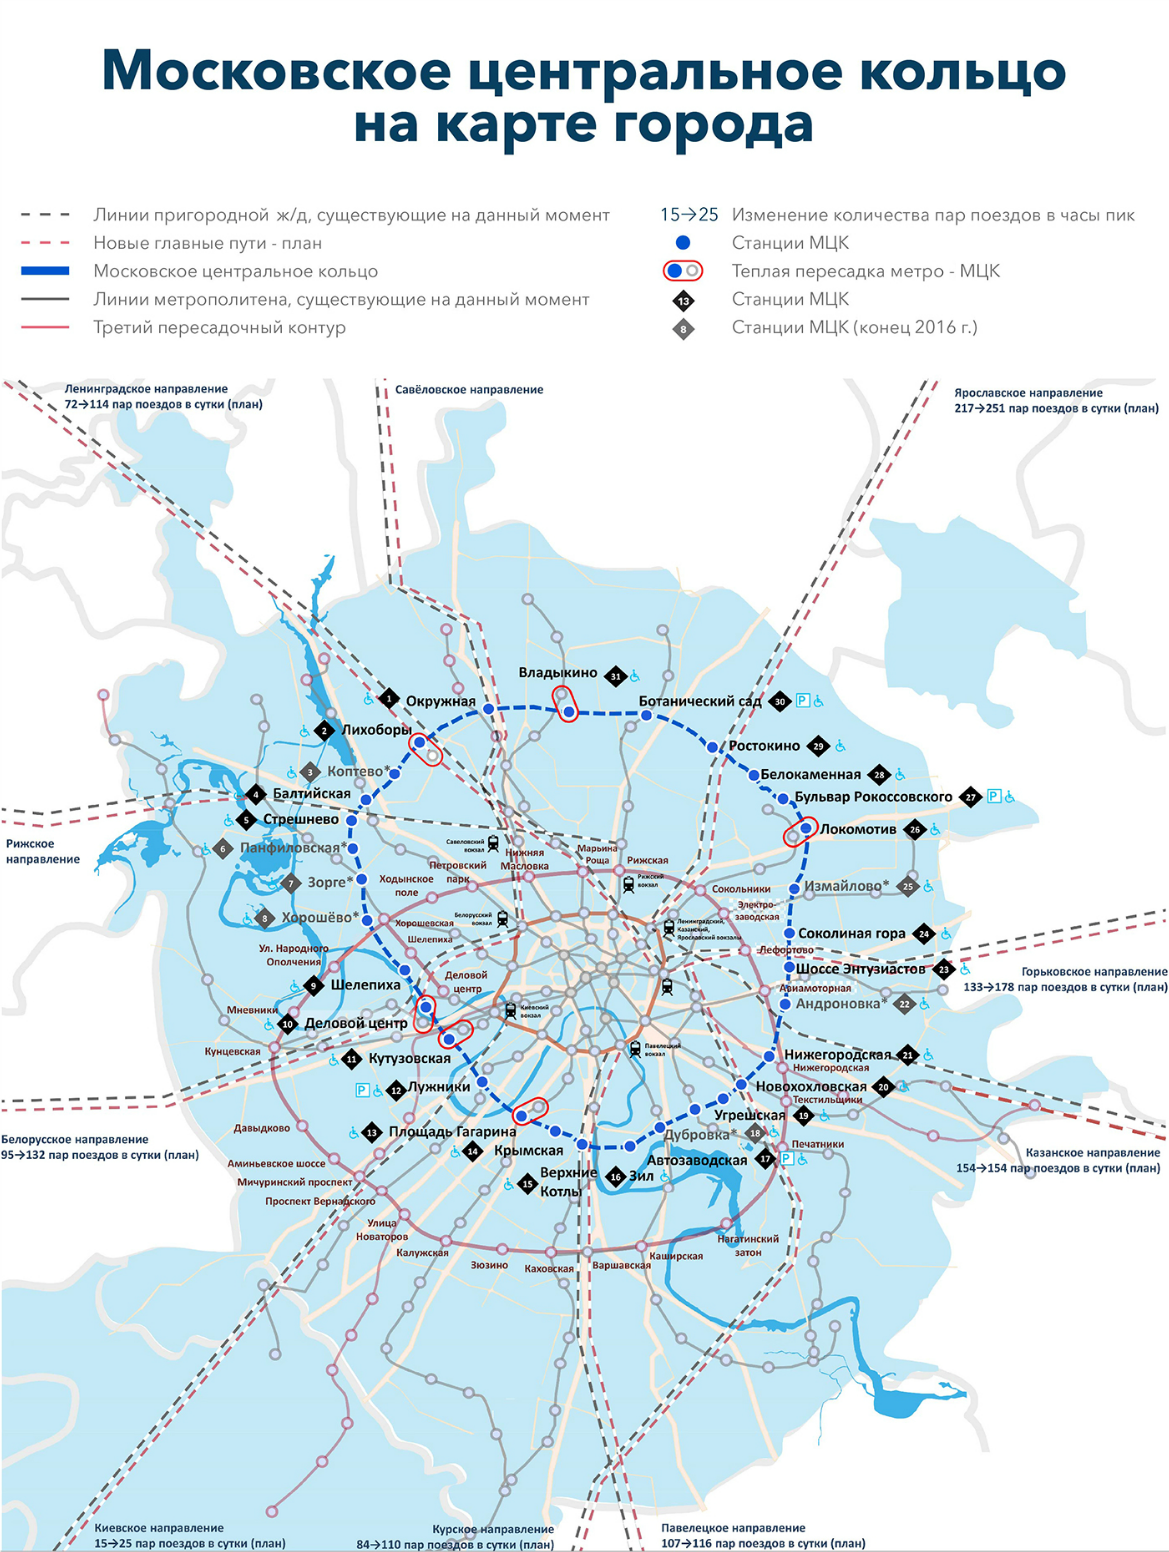 https://upload.wikimedia.org/wikipedia/commons/d/d5/Moscow_Central_Ring_-_passenger_scheme2.png